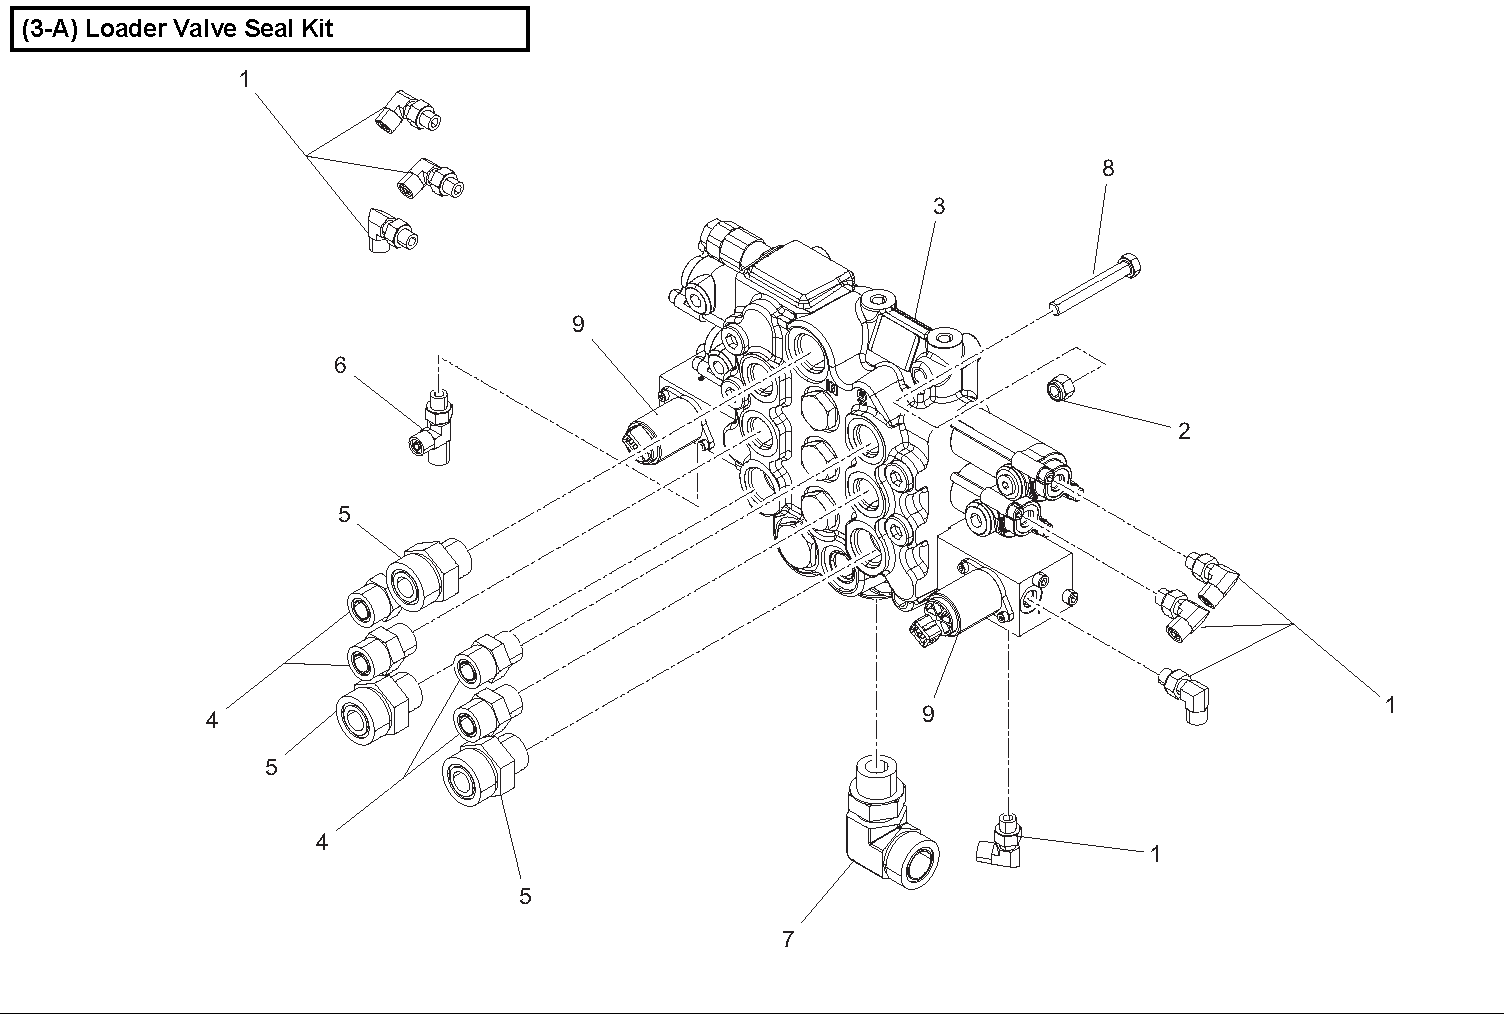 Diagram 3-2A LIft Arm Control Valve